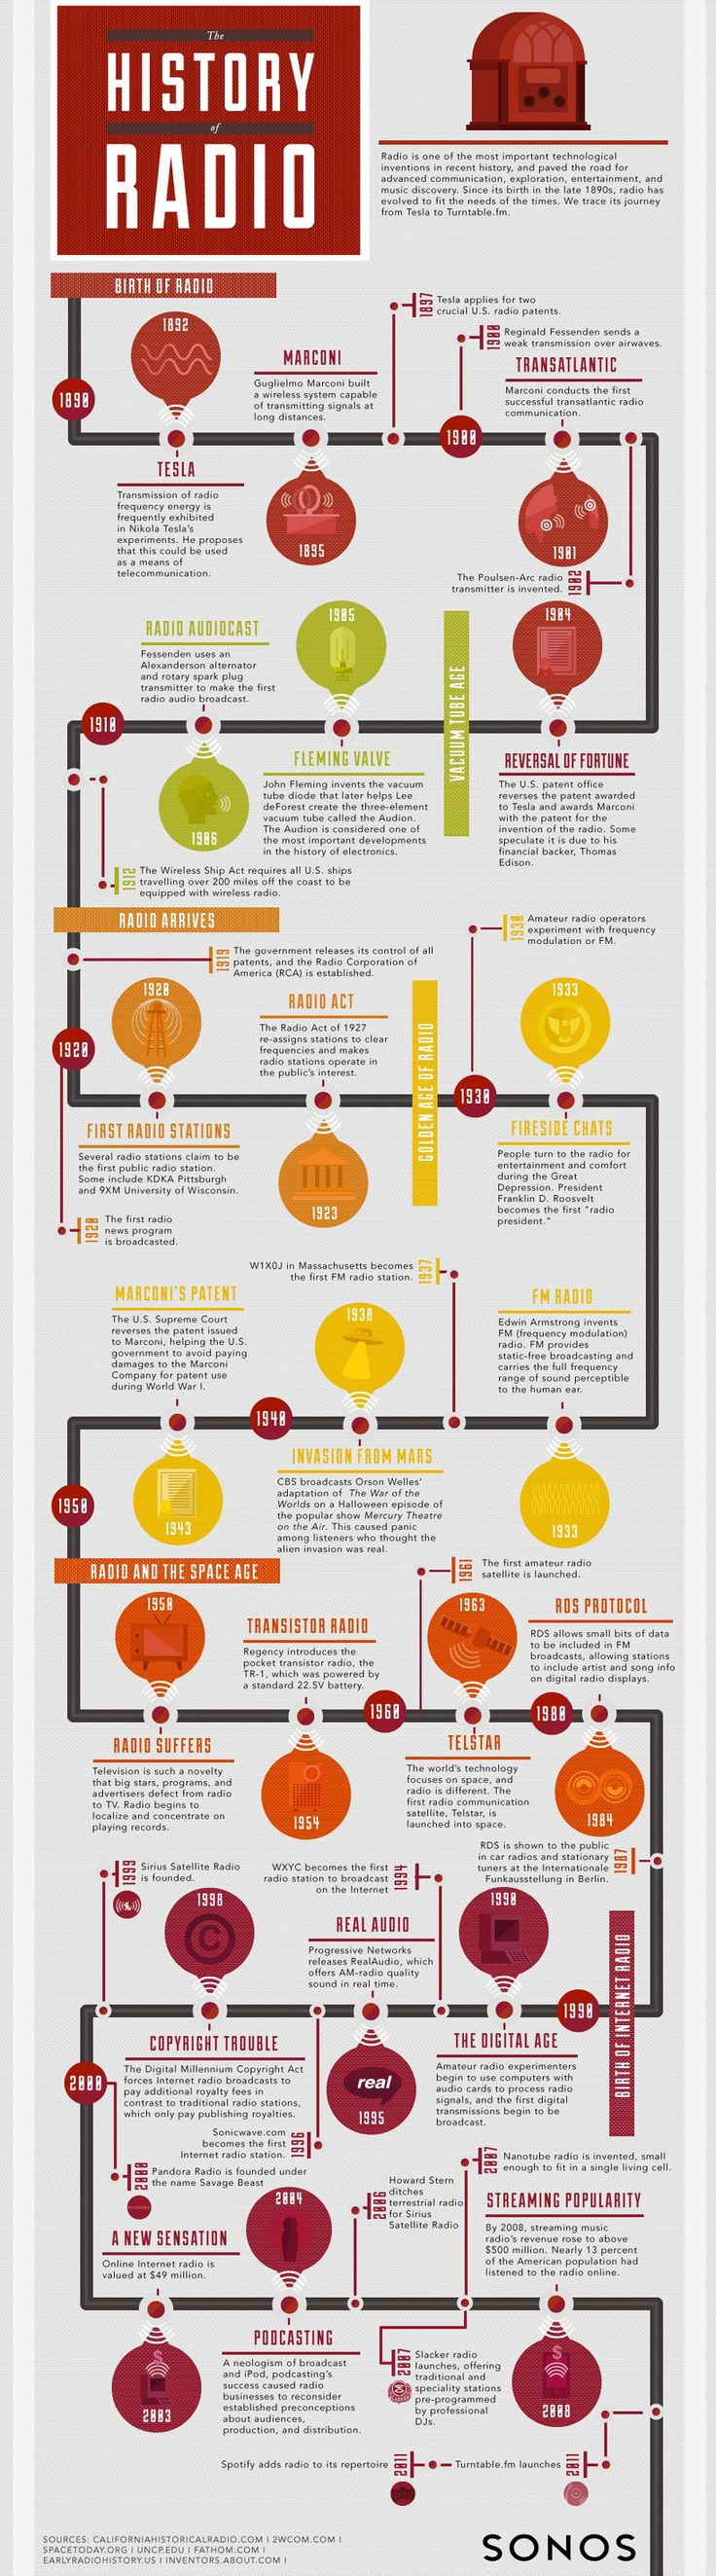 Radio is one of the most important technological inventions in recent history, and paved the road for advanced communication, exploration, entertainment, and music discovery. Since its birth in the late 1890s, radio has evolved to fit the needs of the times. We trace its journey from Tesla to Turntable.fm in this infographic created with Sonos.